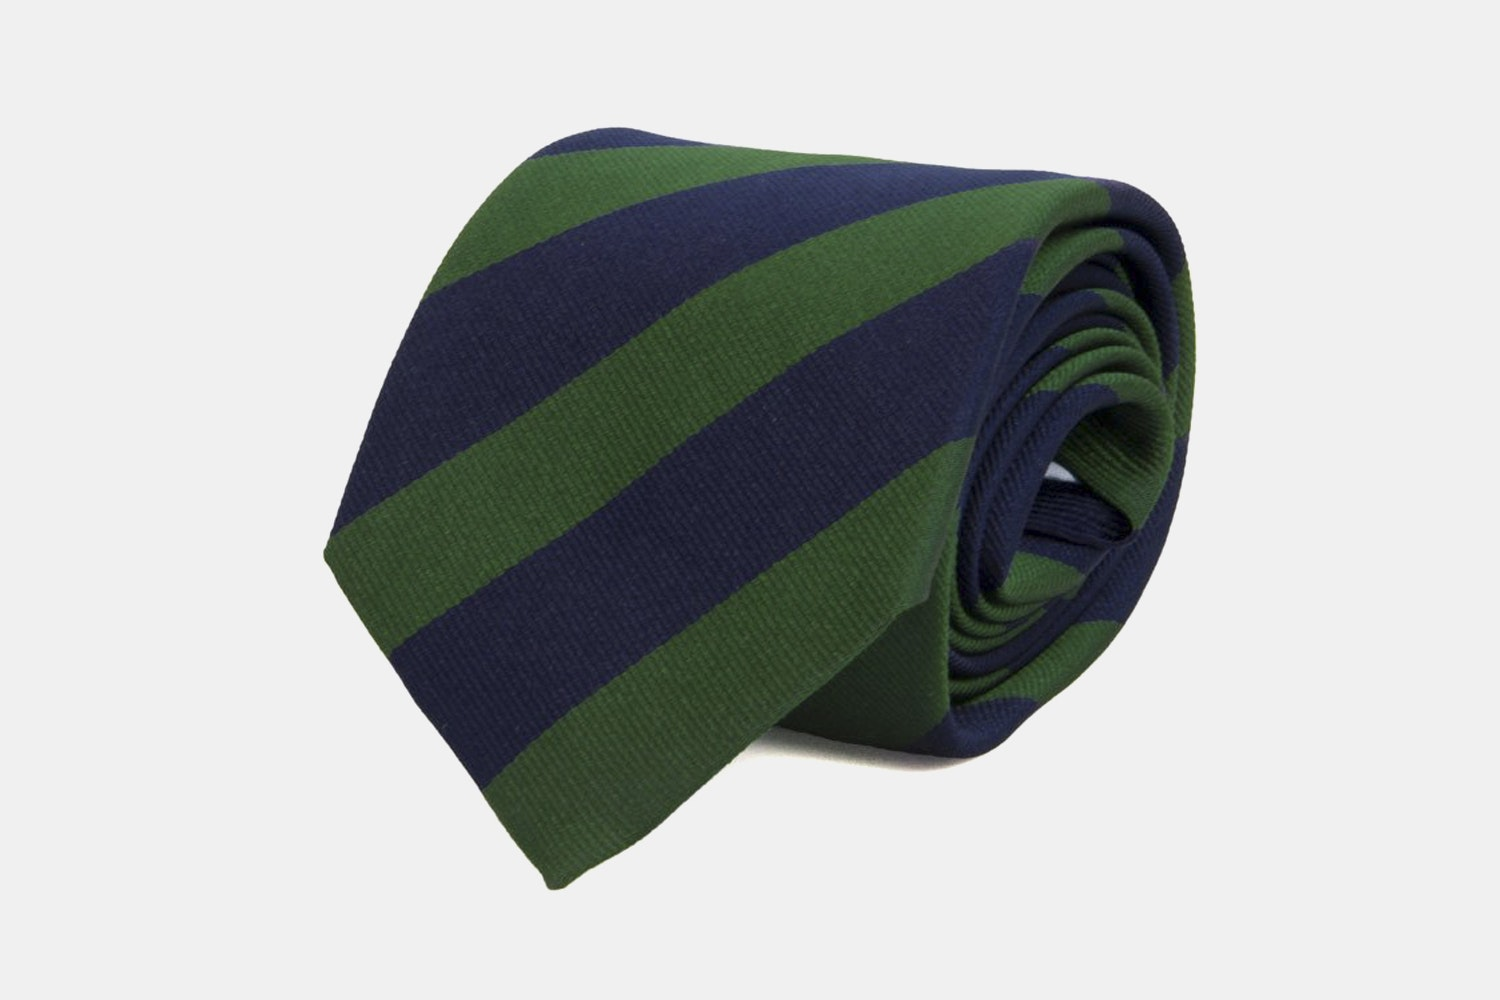 Club-striped - Navy/Green